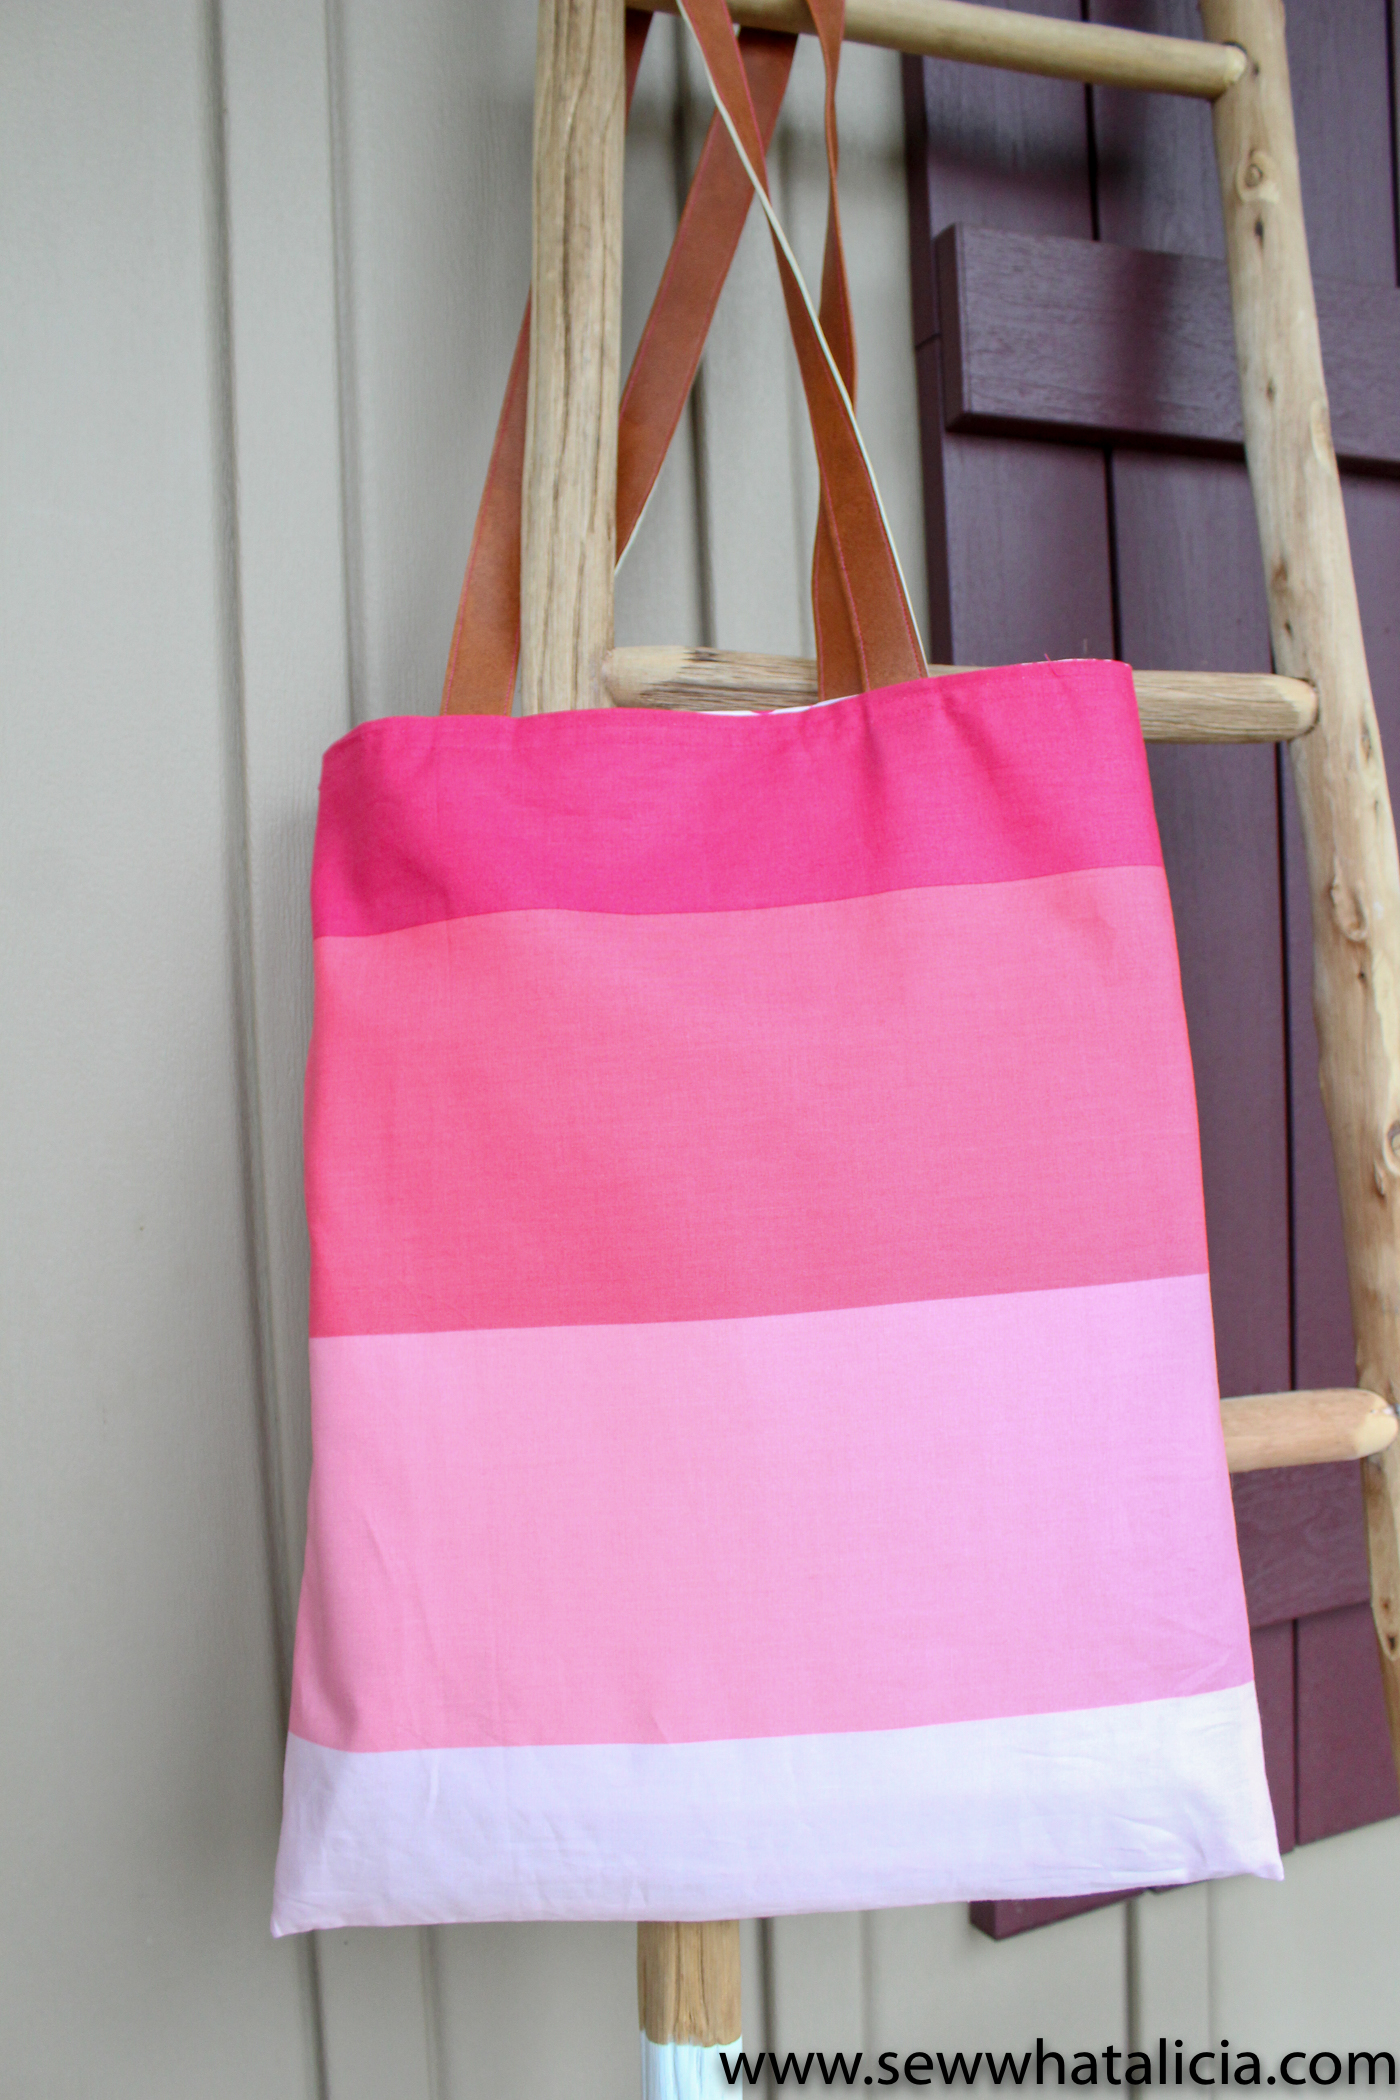 How to make a tote bag: Finished beauty shot of tote hanging on ladder. | www.sewwhatalicia.com